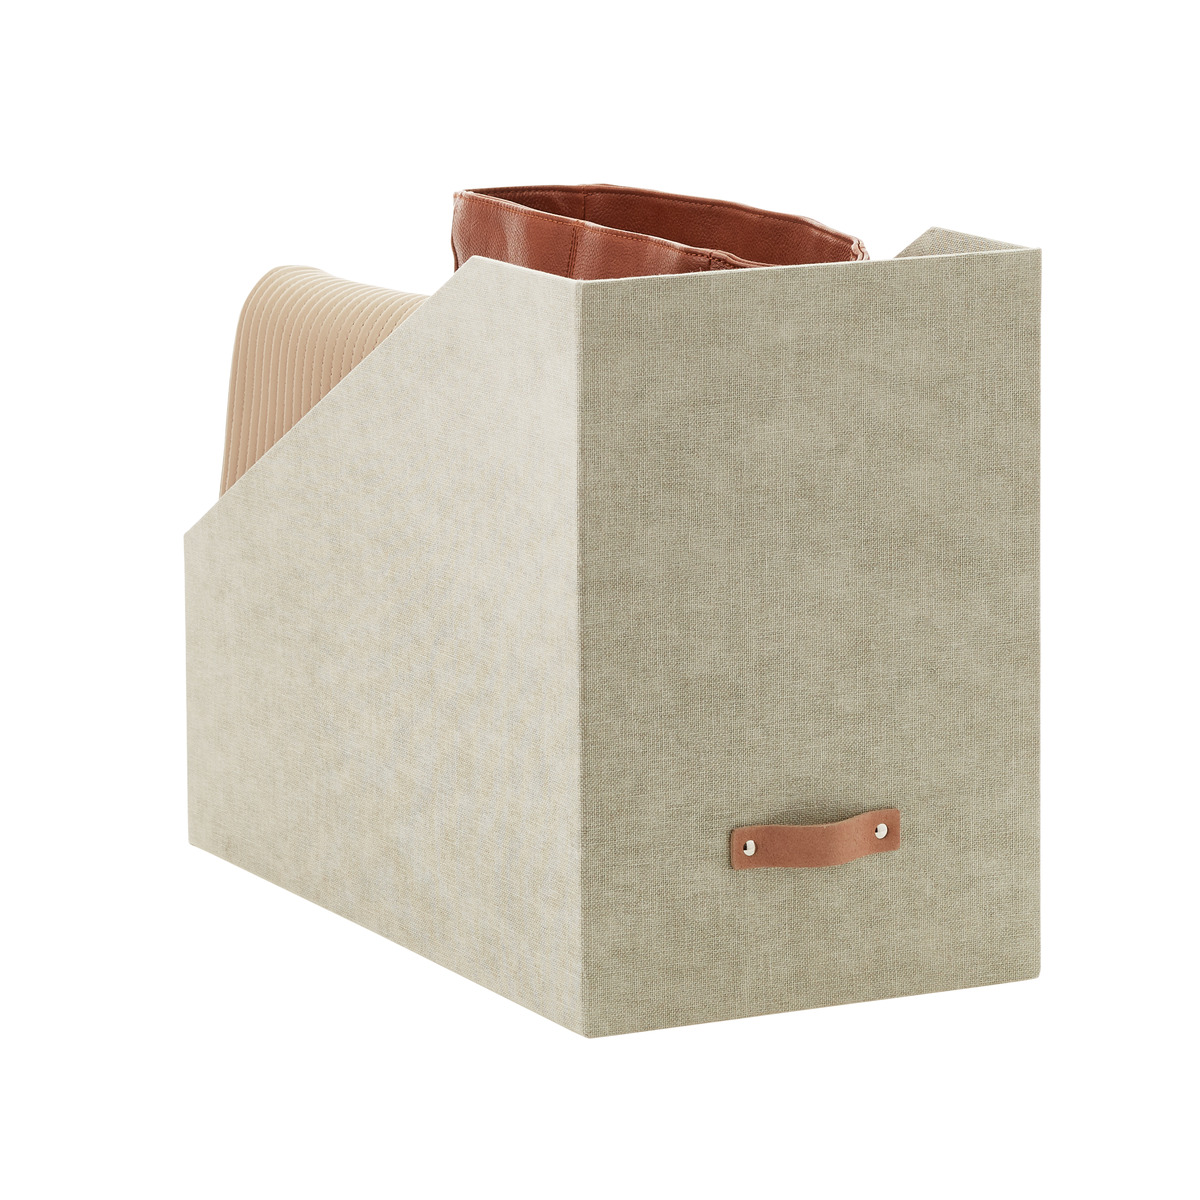 Avera Linen Purse Storage Bins